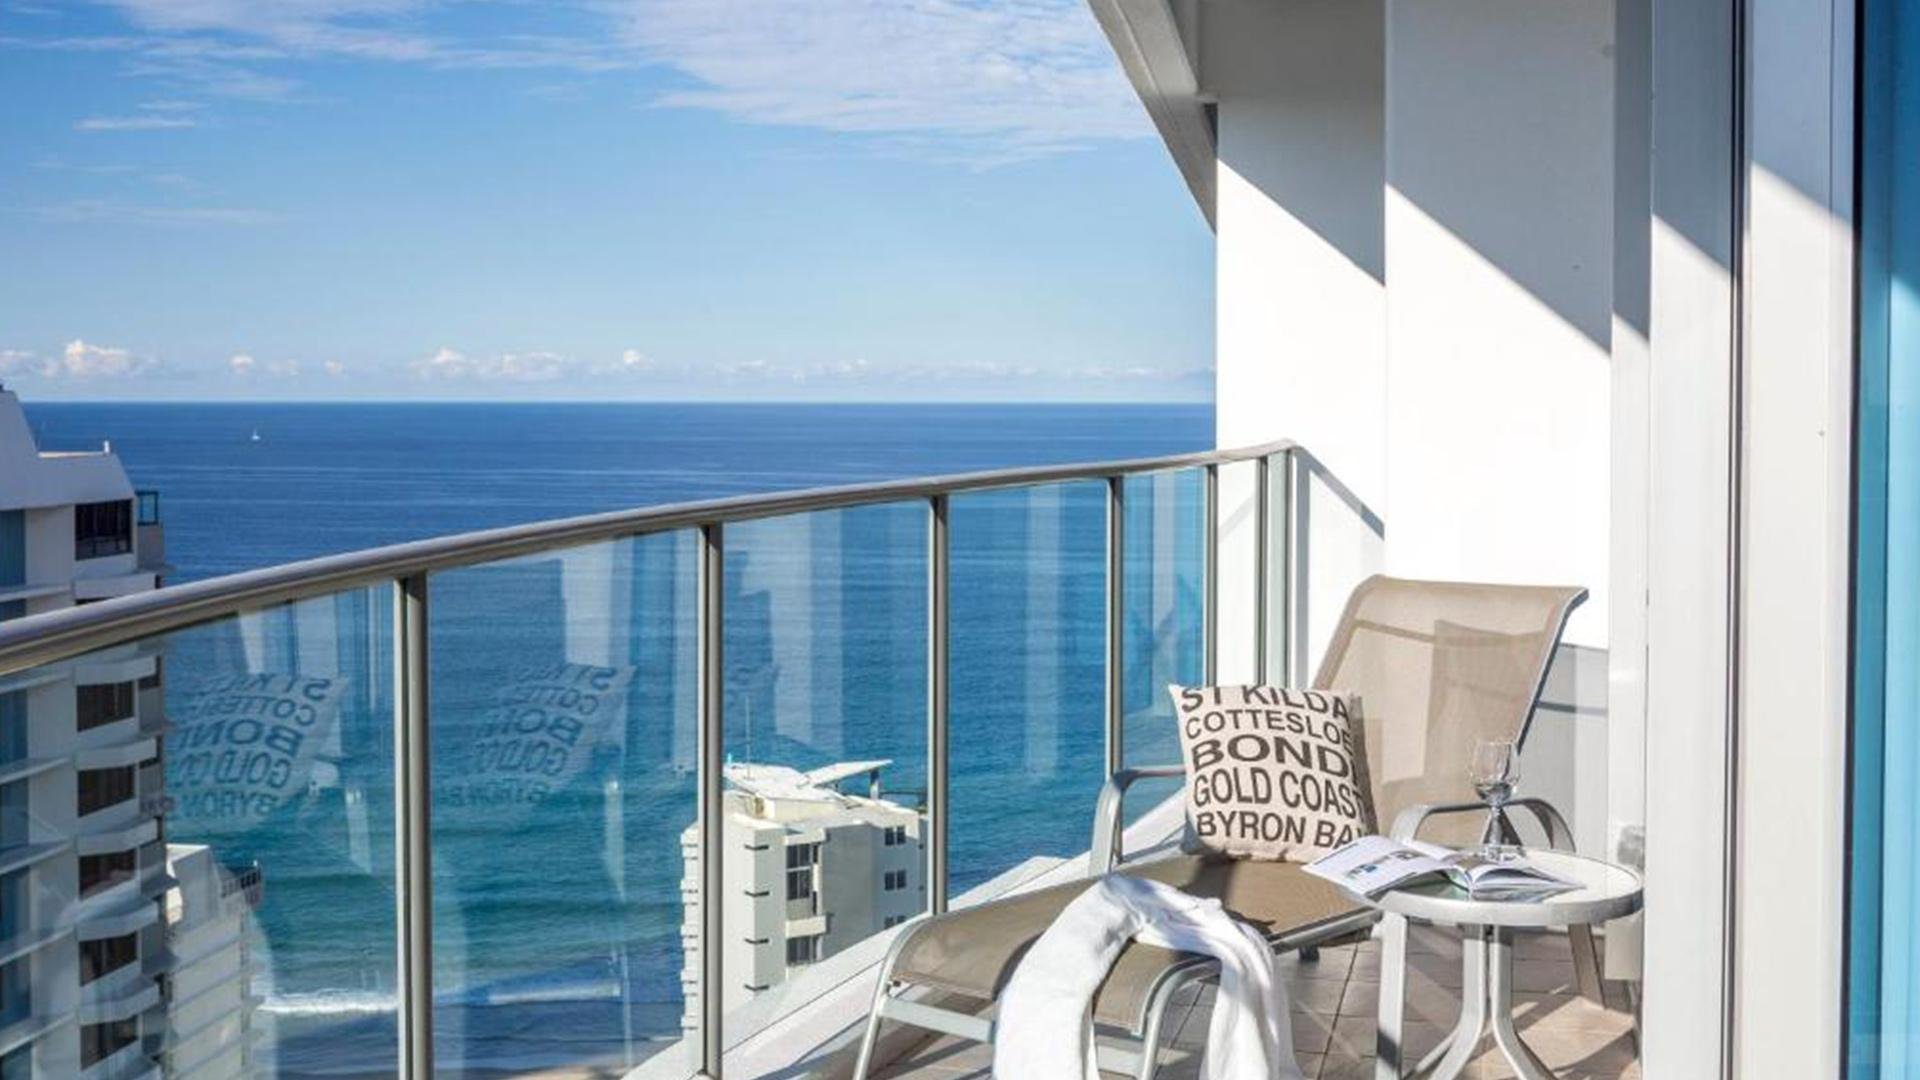 Two-Bedroom Superior Ocean View image 1 at Artique Surfers Paradise by City of Gold Coast, Queensland, Australia